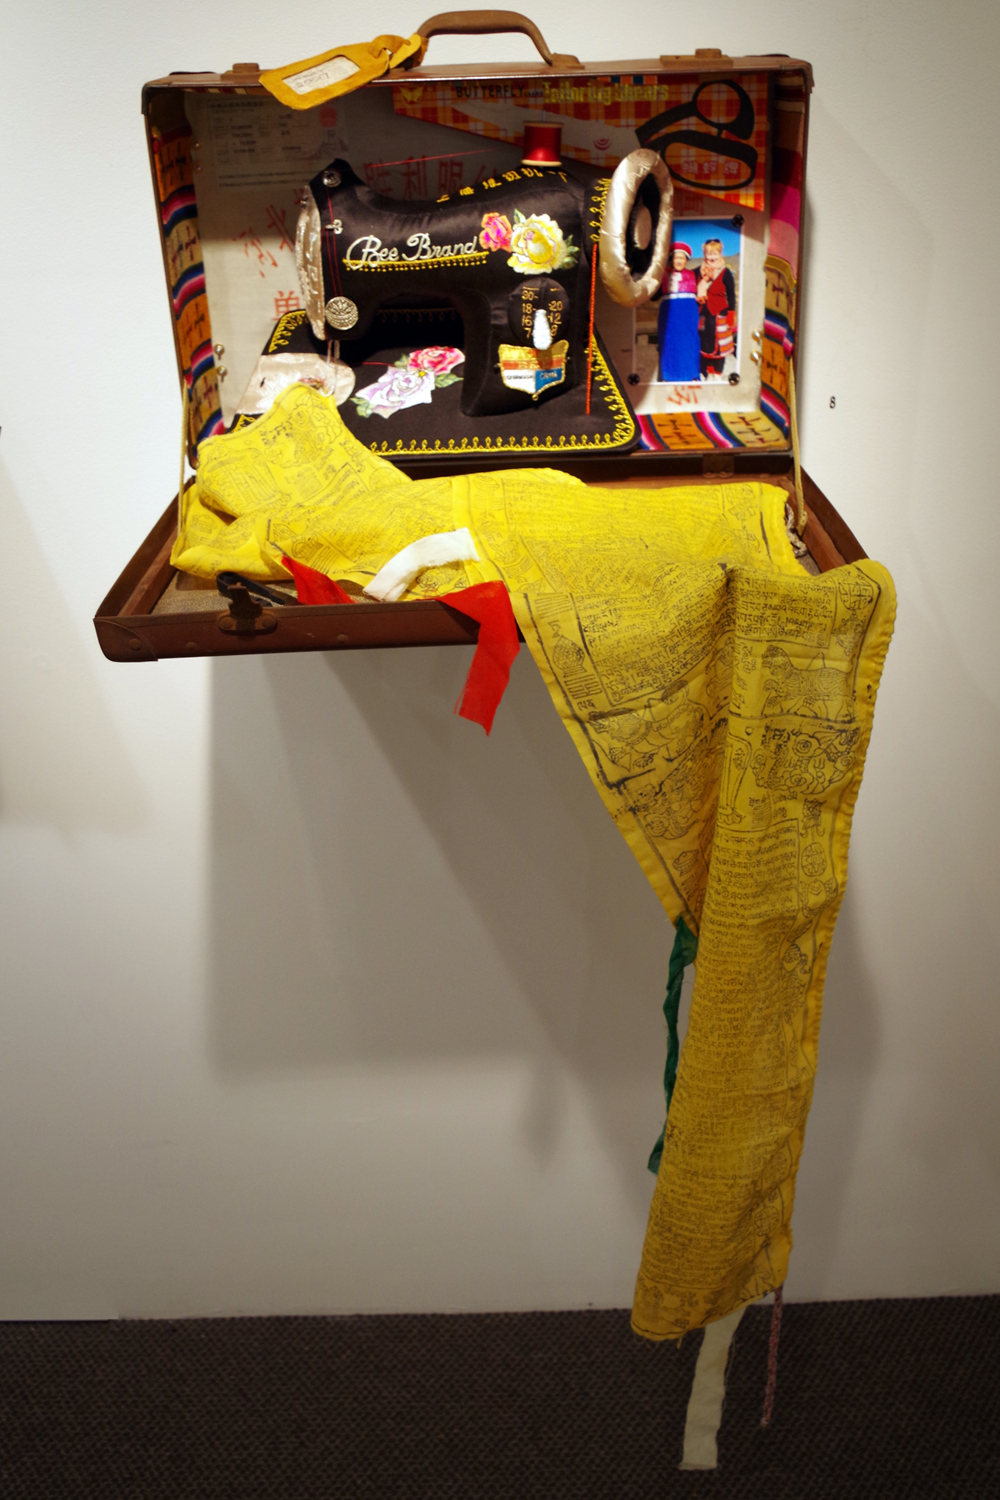 8. 'Lhasa, Tibet - 2007', Susie Vickery, embroidery, applique, found objects, $2,700